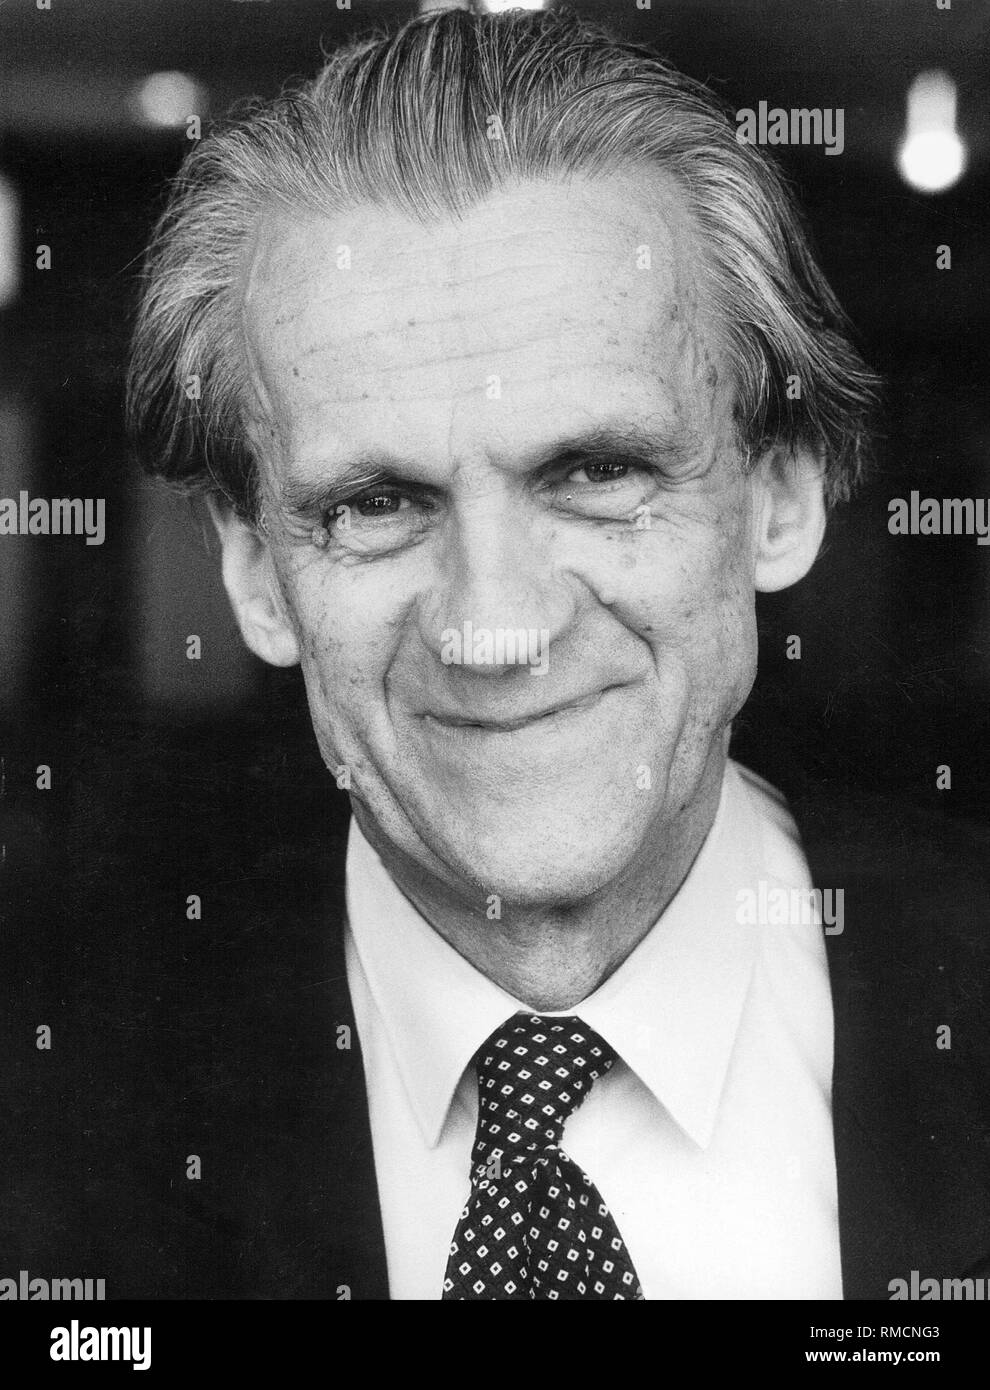 Walter Jens (born 1923), a German literary scholar and writer. - Stock Image